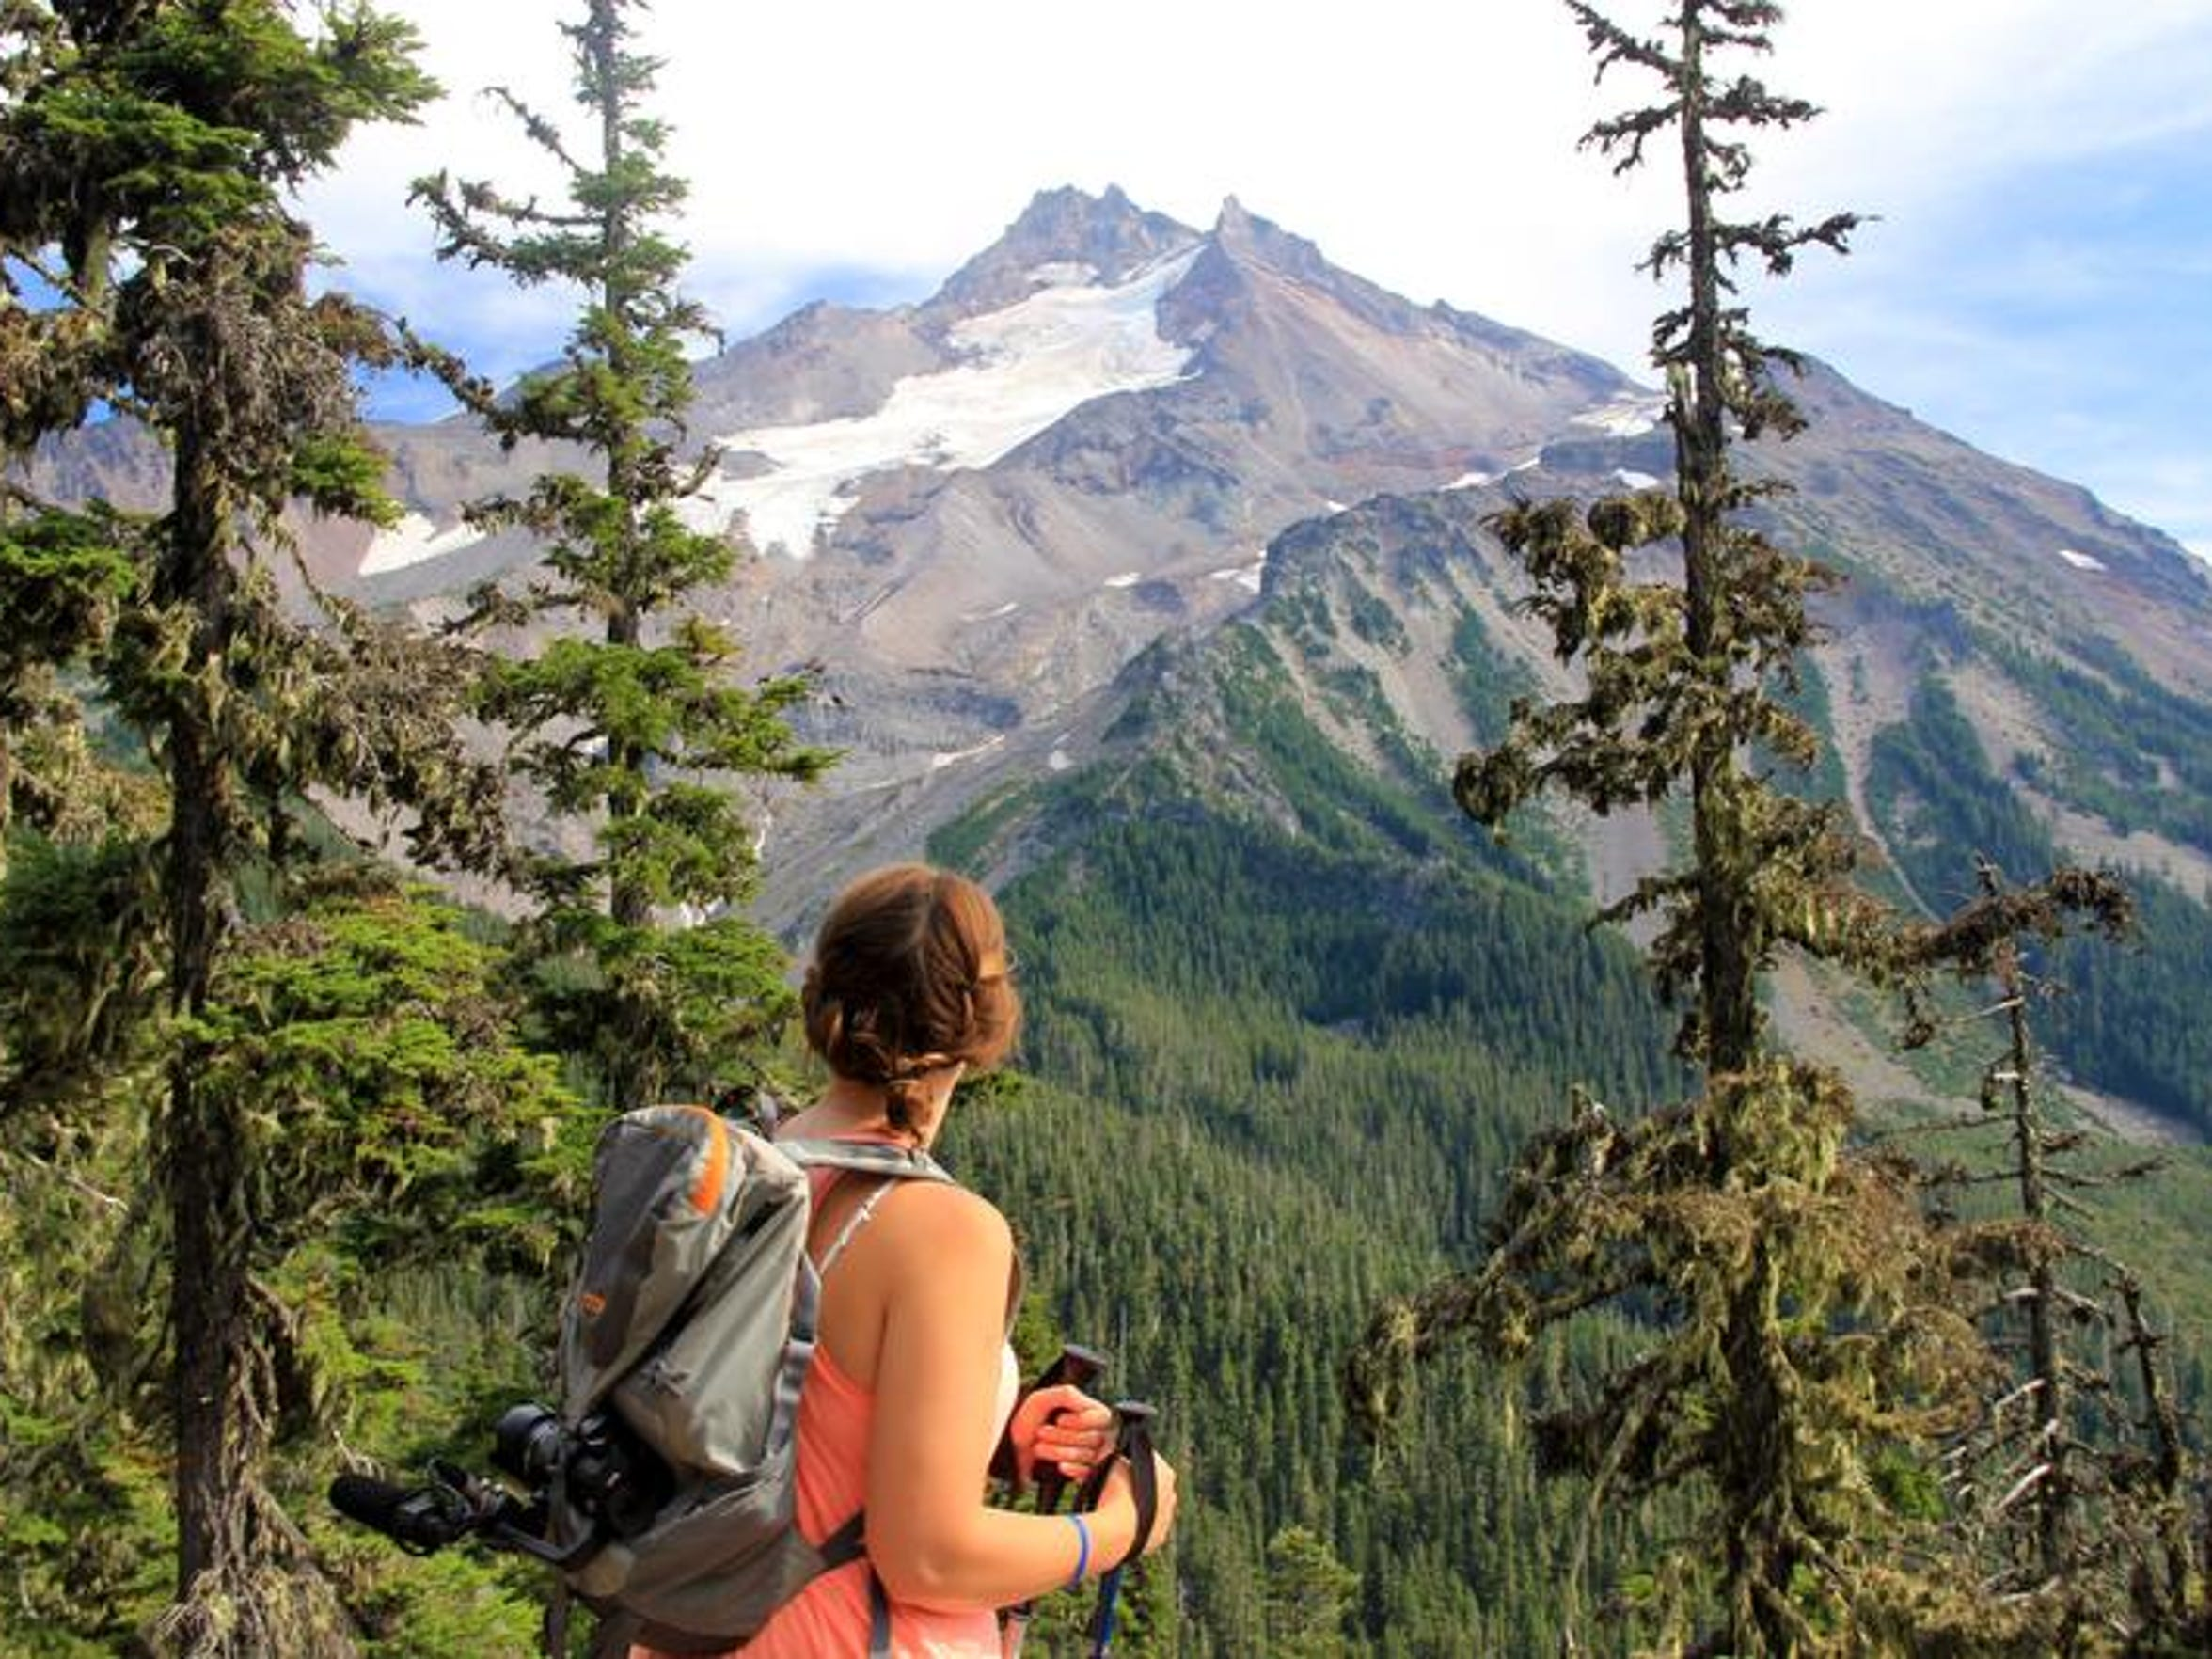 The view of Mount Jefferson from the trail leading to Jefferson Park offers excellent views of Oregon's second tallest mountain.